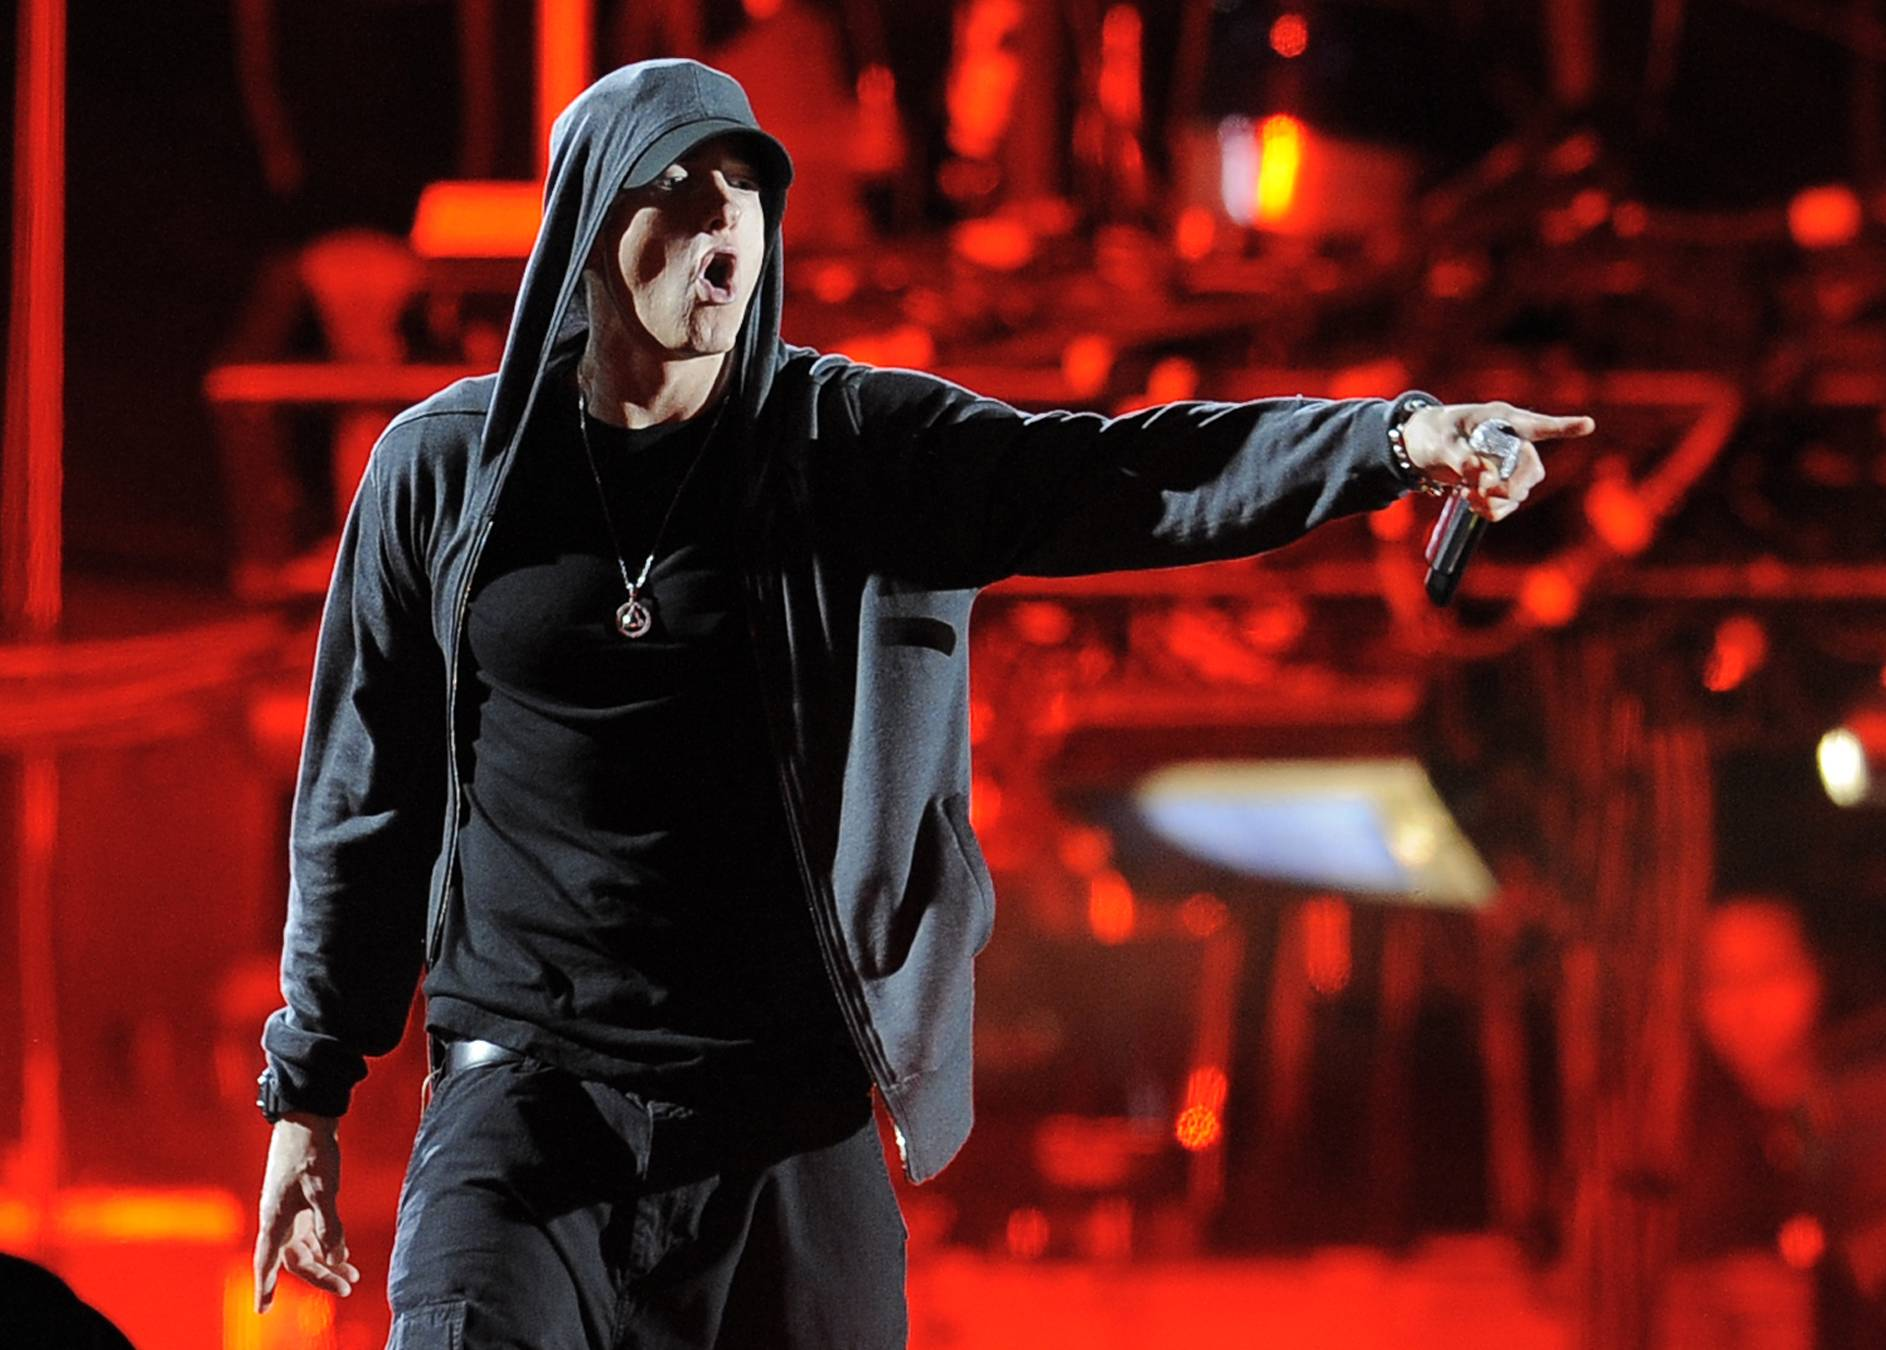 Eminem gave his estranged mom quite the Mother's Day gift, releasing a music video for an apologetic song that depicts her struggles raising the rebellious rapper.